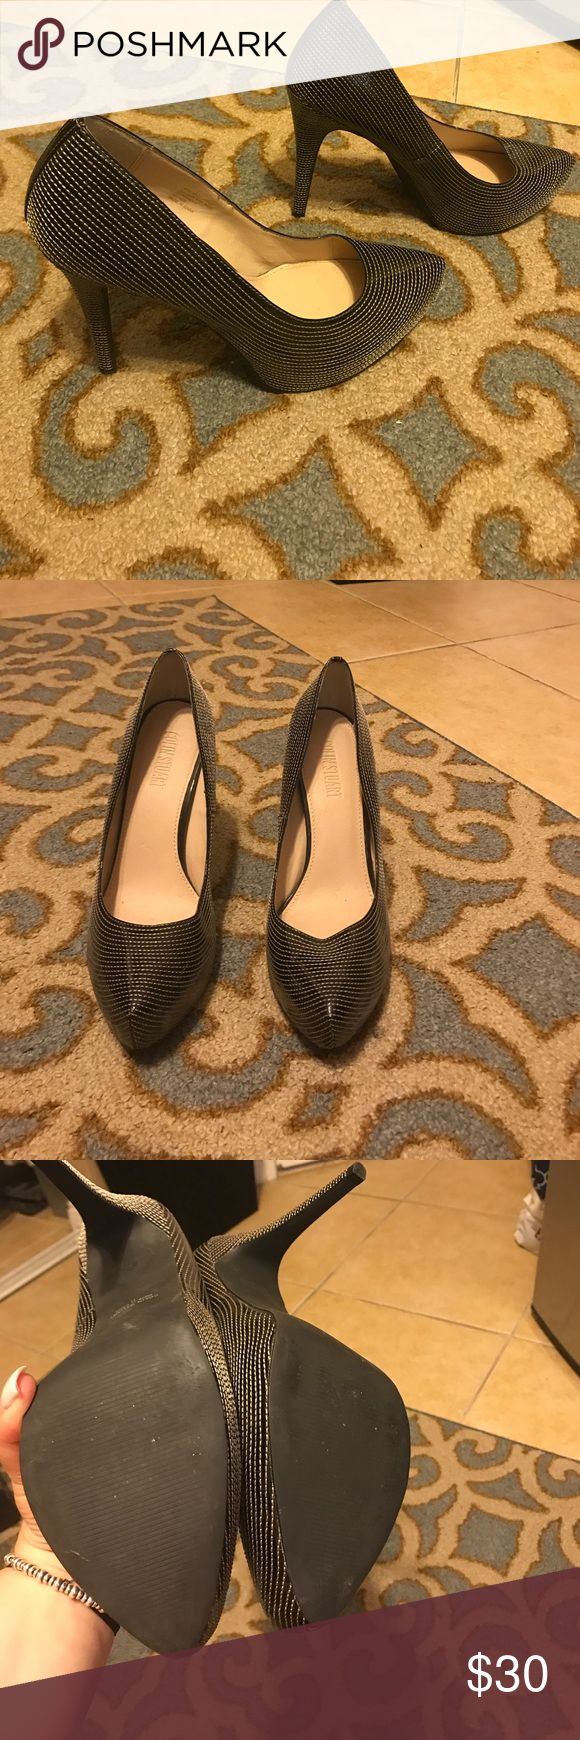 Colin Stuart Heels Black/White Colin Stuart Heels. Great condition Colin Stuart Shoes Heels